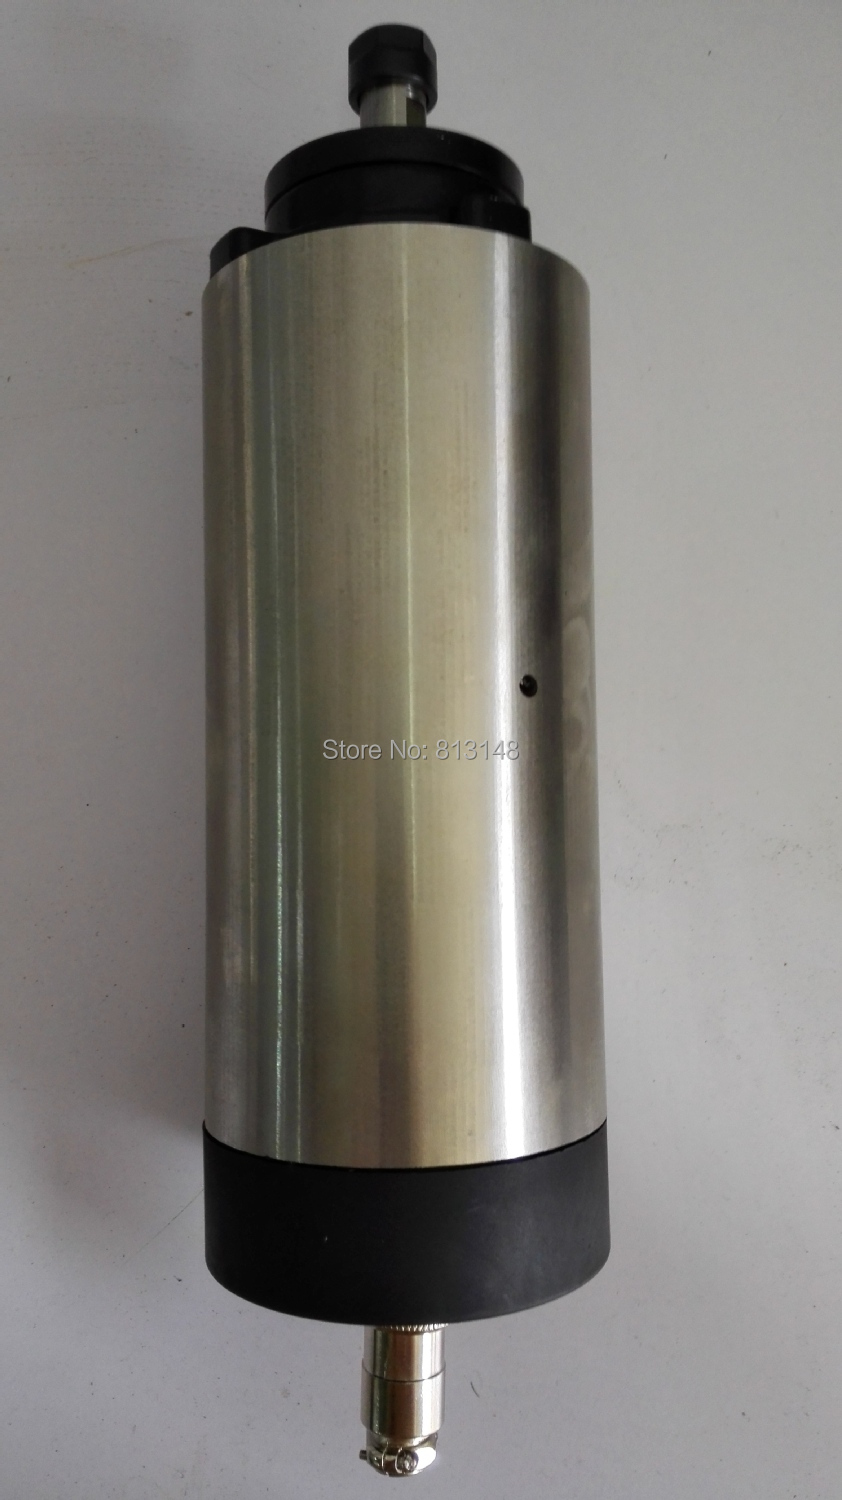 24000RPM diameter 80mm,ER16 1.5KW air cooling spindle motor 4 bearing for cnc router+whole set 10 pieces ER 16 COLLECT